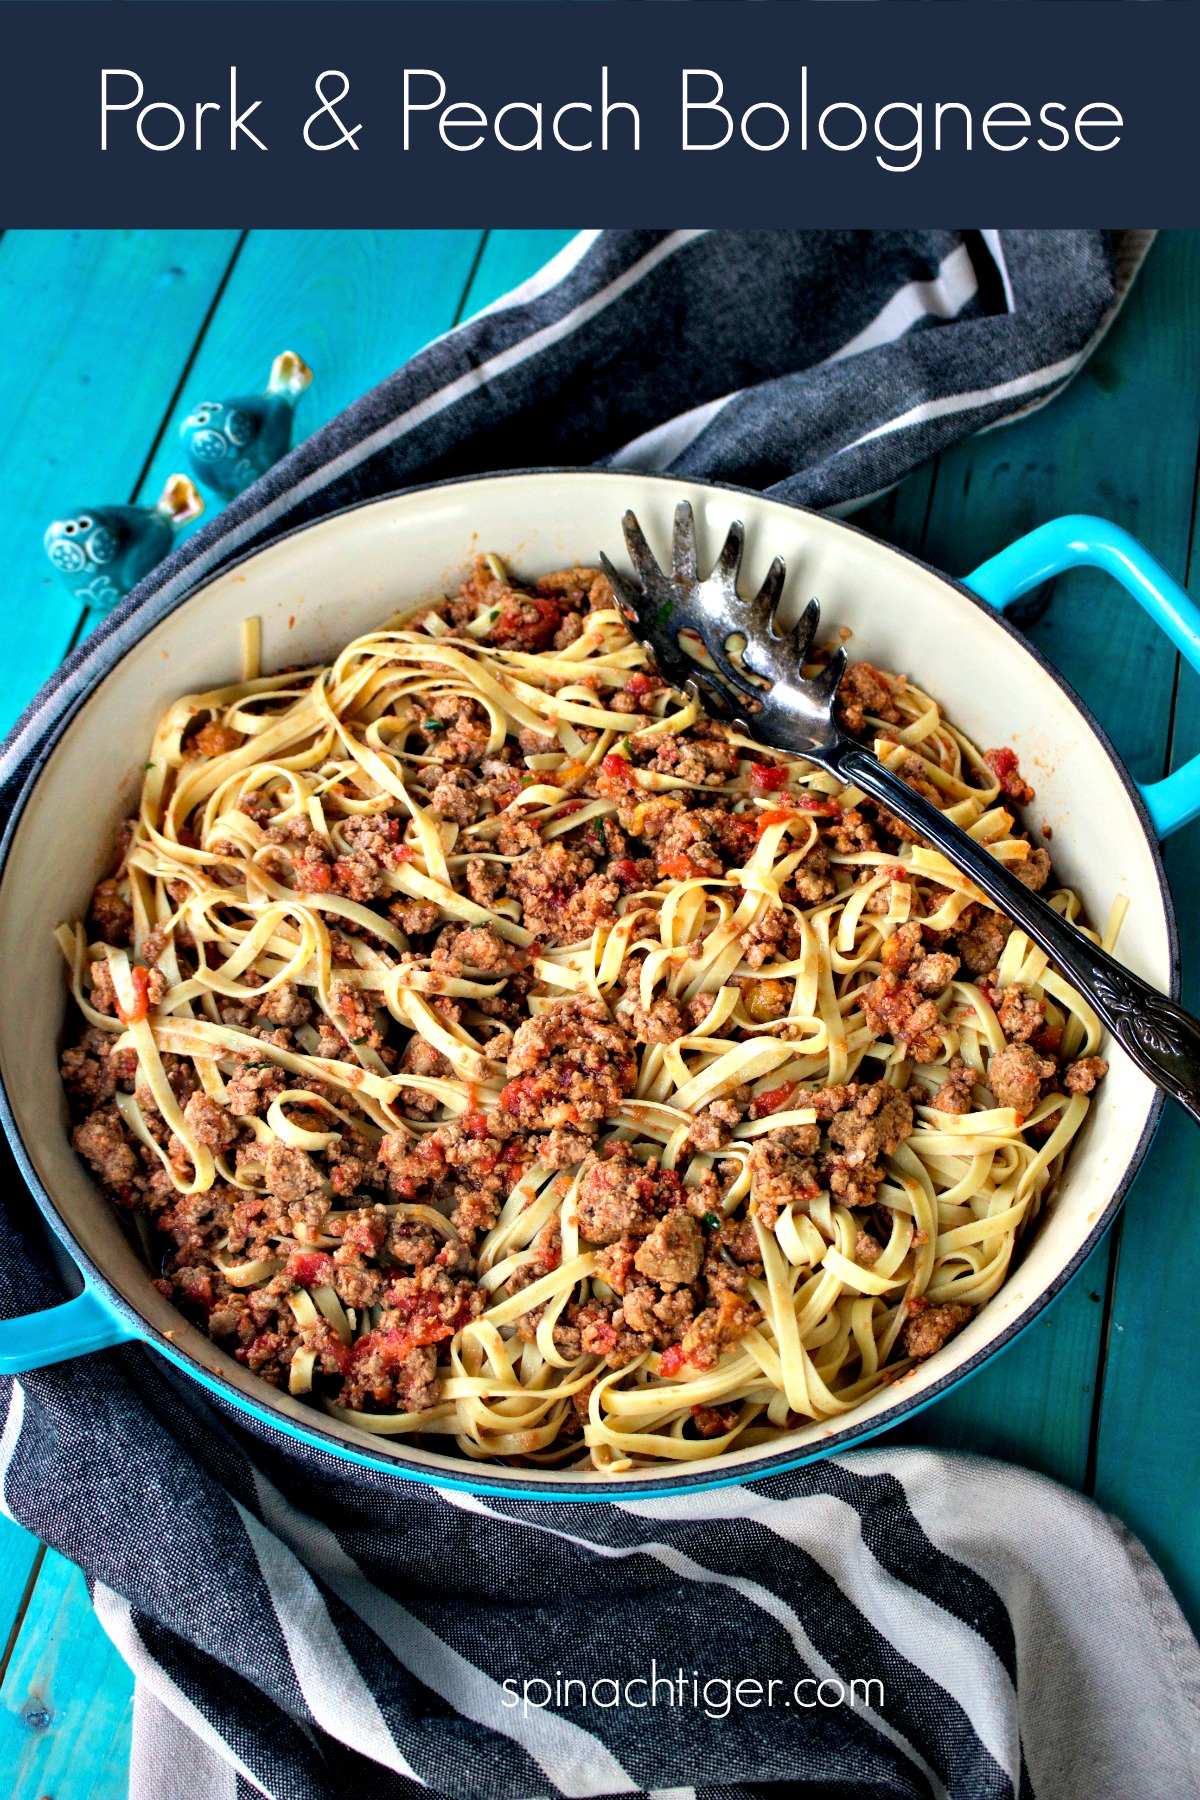 Pork and Peach Bolognese, brings the best of summer and comfort food together. Authentic #bolognese with the added sweetness of summer peaches. #spinachtiger via @angelaroberts